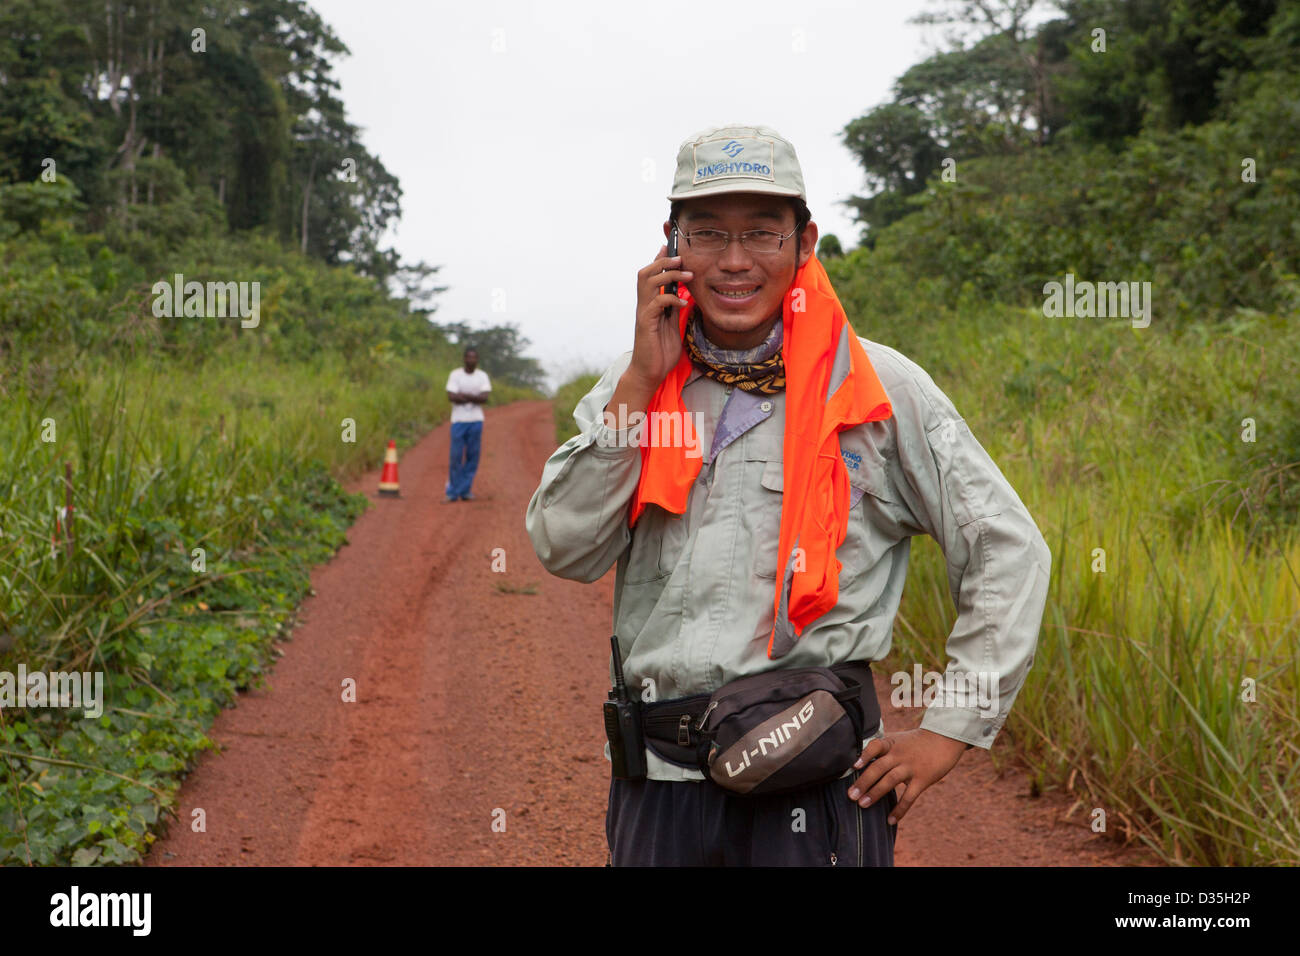 CONGO, 27th Sept 2012: Chinese road engineer from company Sinohydro supervising the building of a major new tarmac - Stock Image